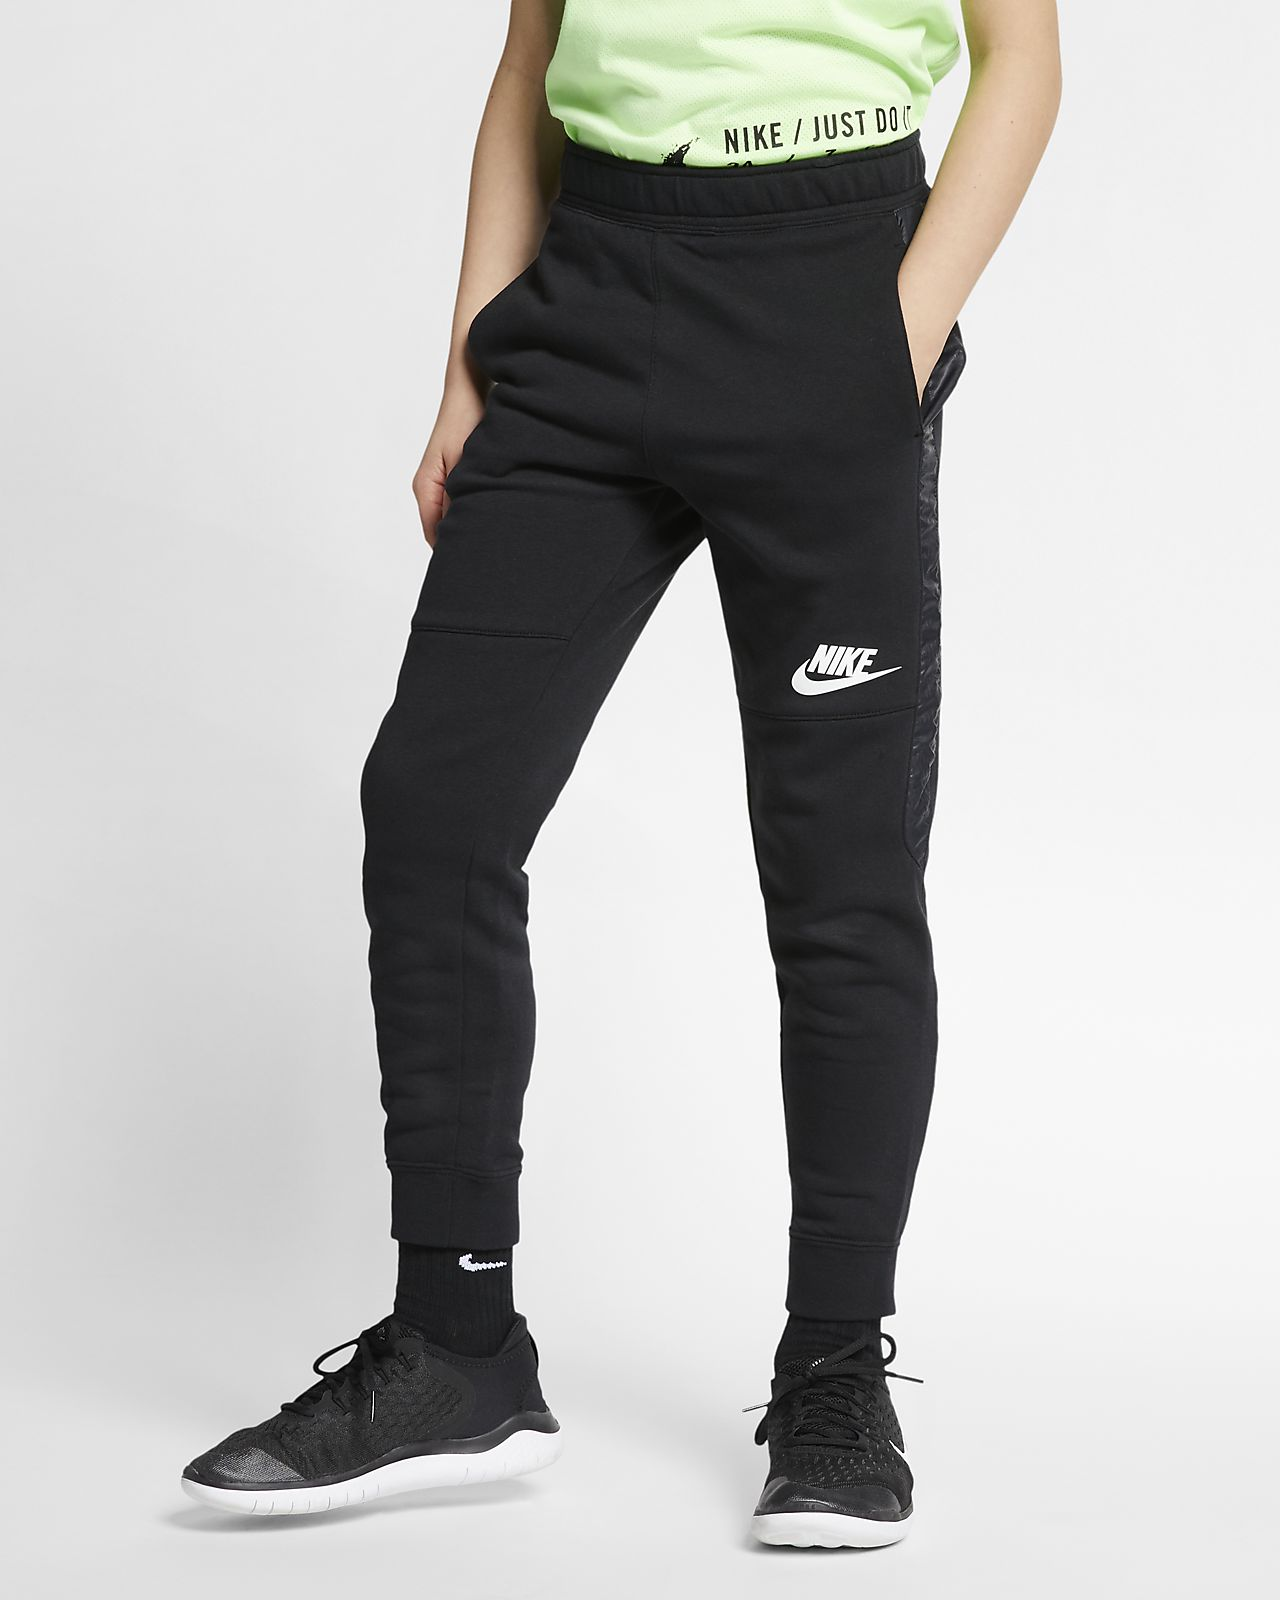 new products 1d2da 36b75 ... Pantalon de jogging Nike Sportswear pour Enfant plus âgé